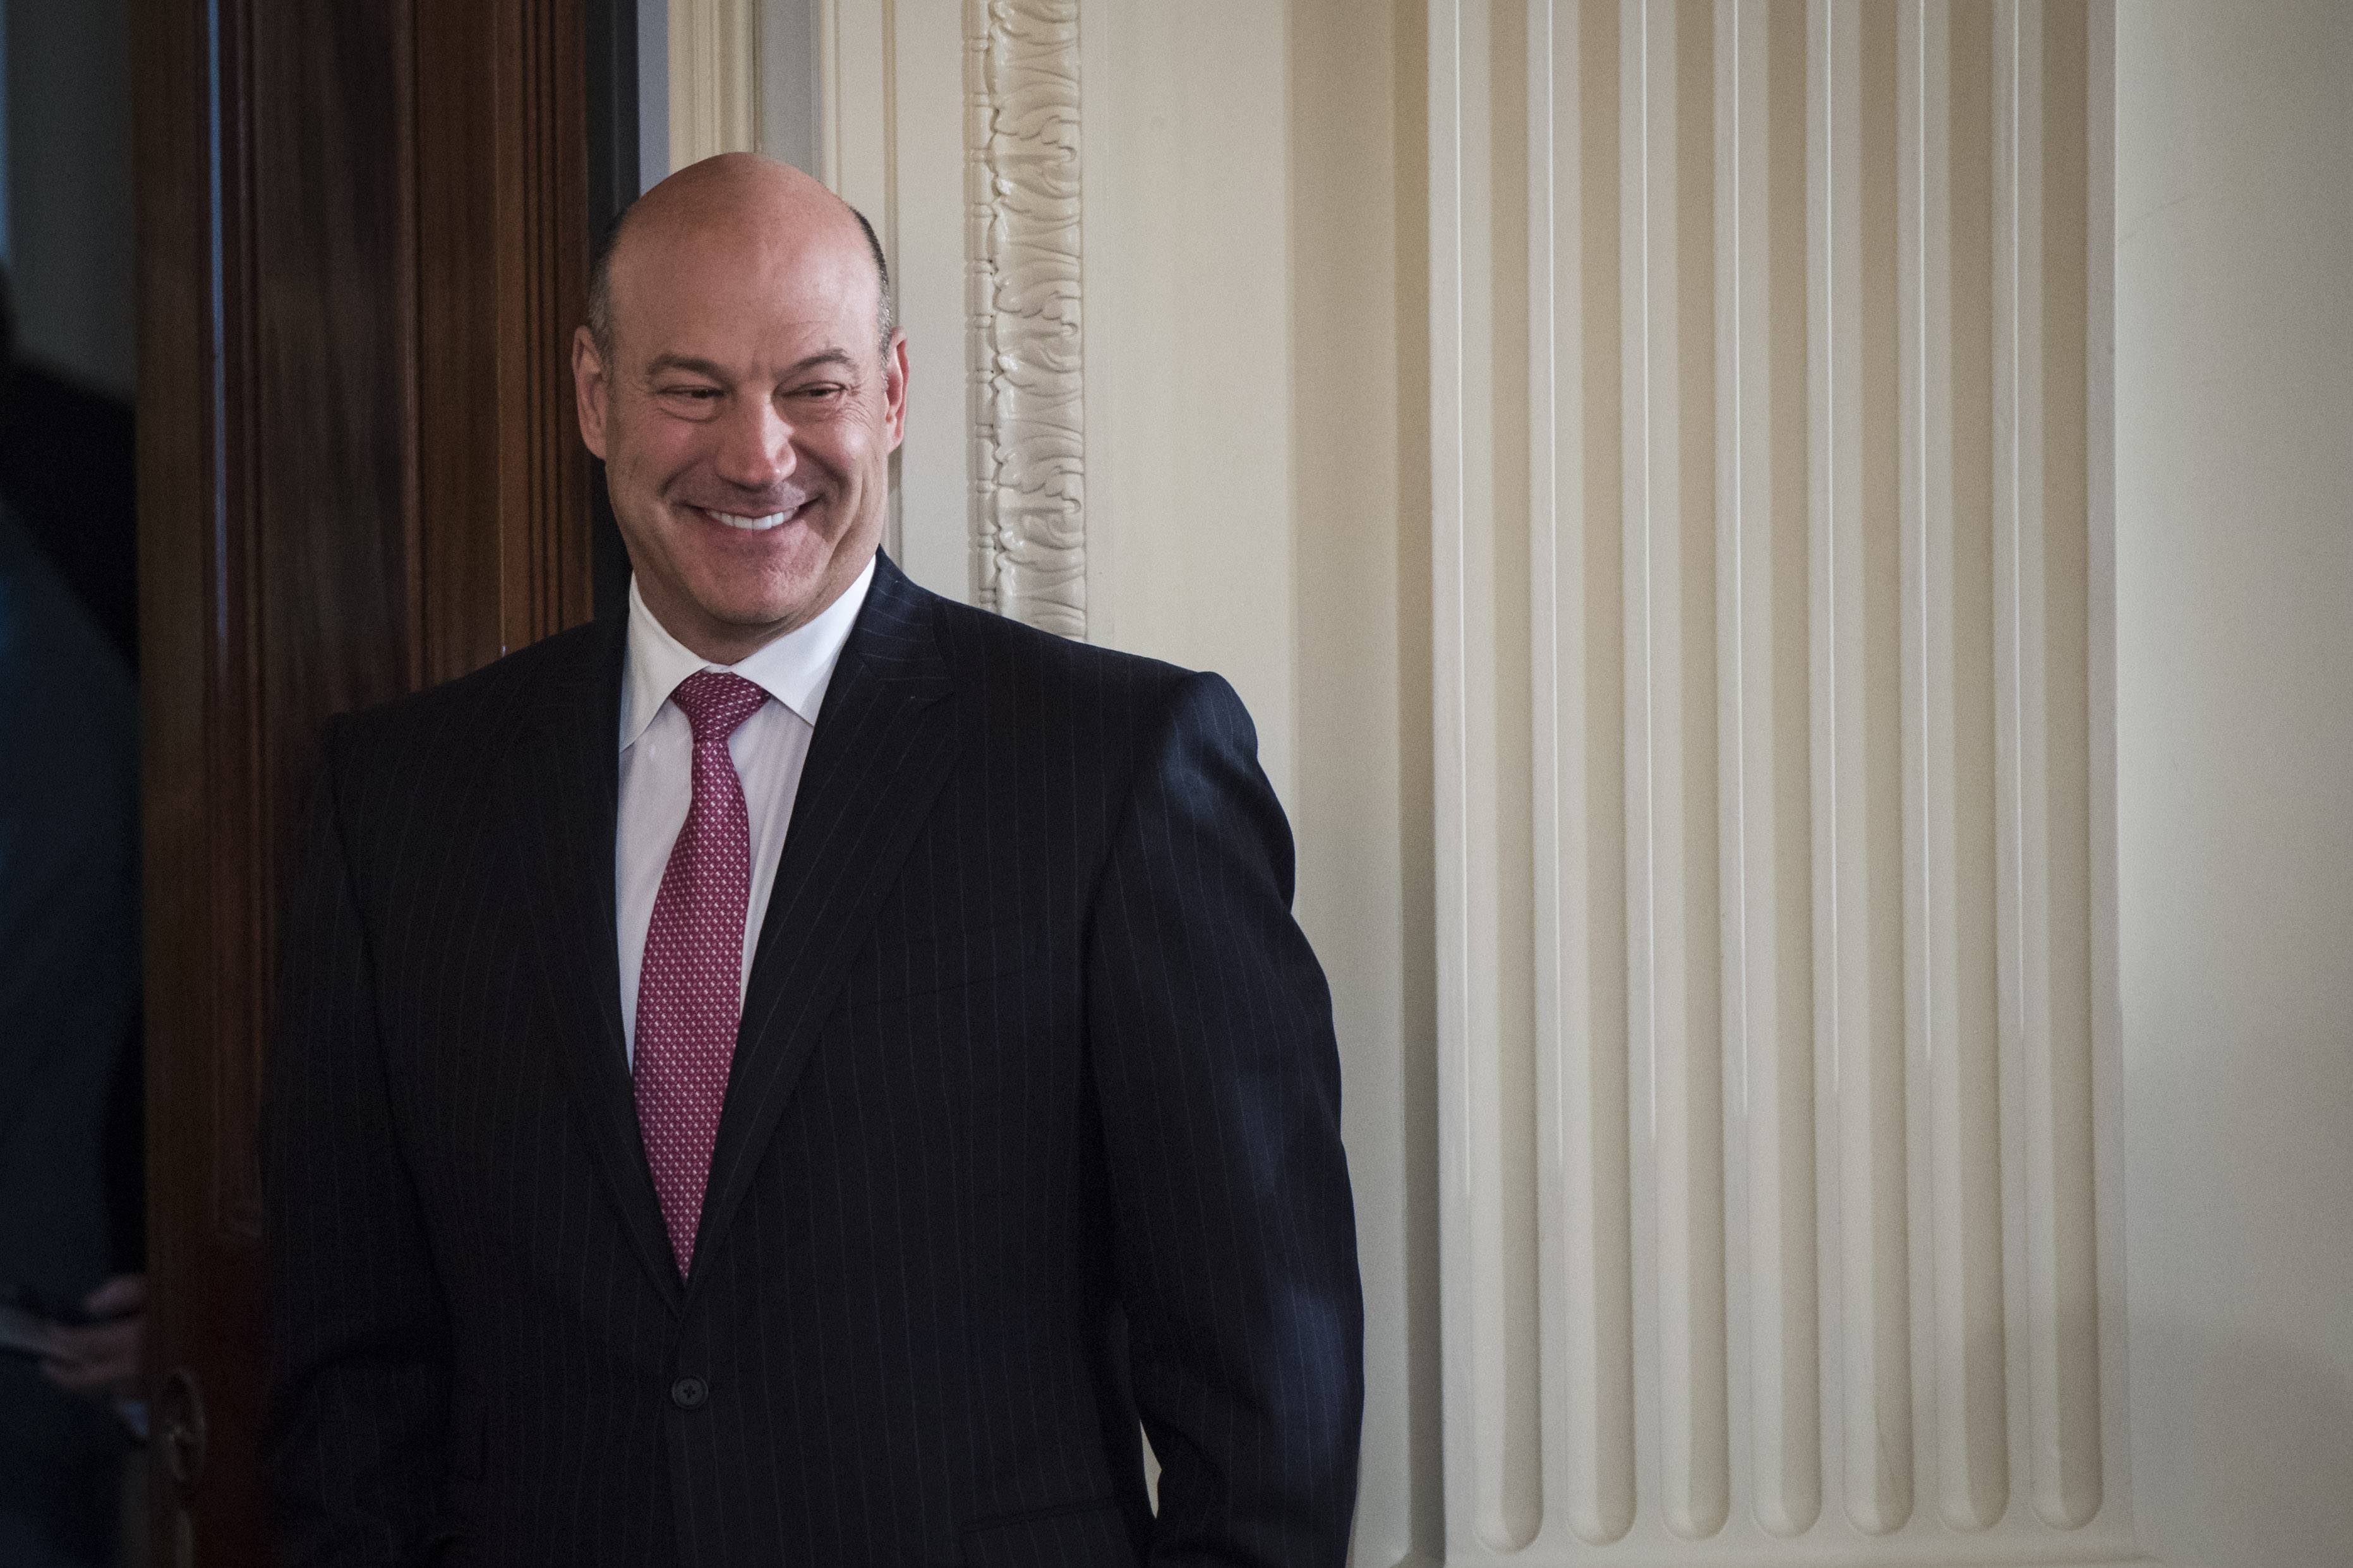 Economic adviser Gary Cohn, seen above in April 2017, was considered one of the more stable parts of the White House administration. He announced his resignation Tuesday. Must credit: Washington Post photo by Jabin Botsford